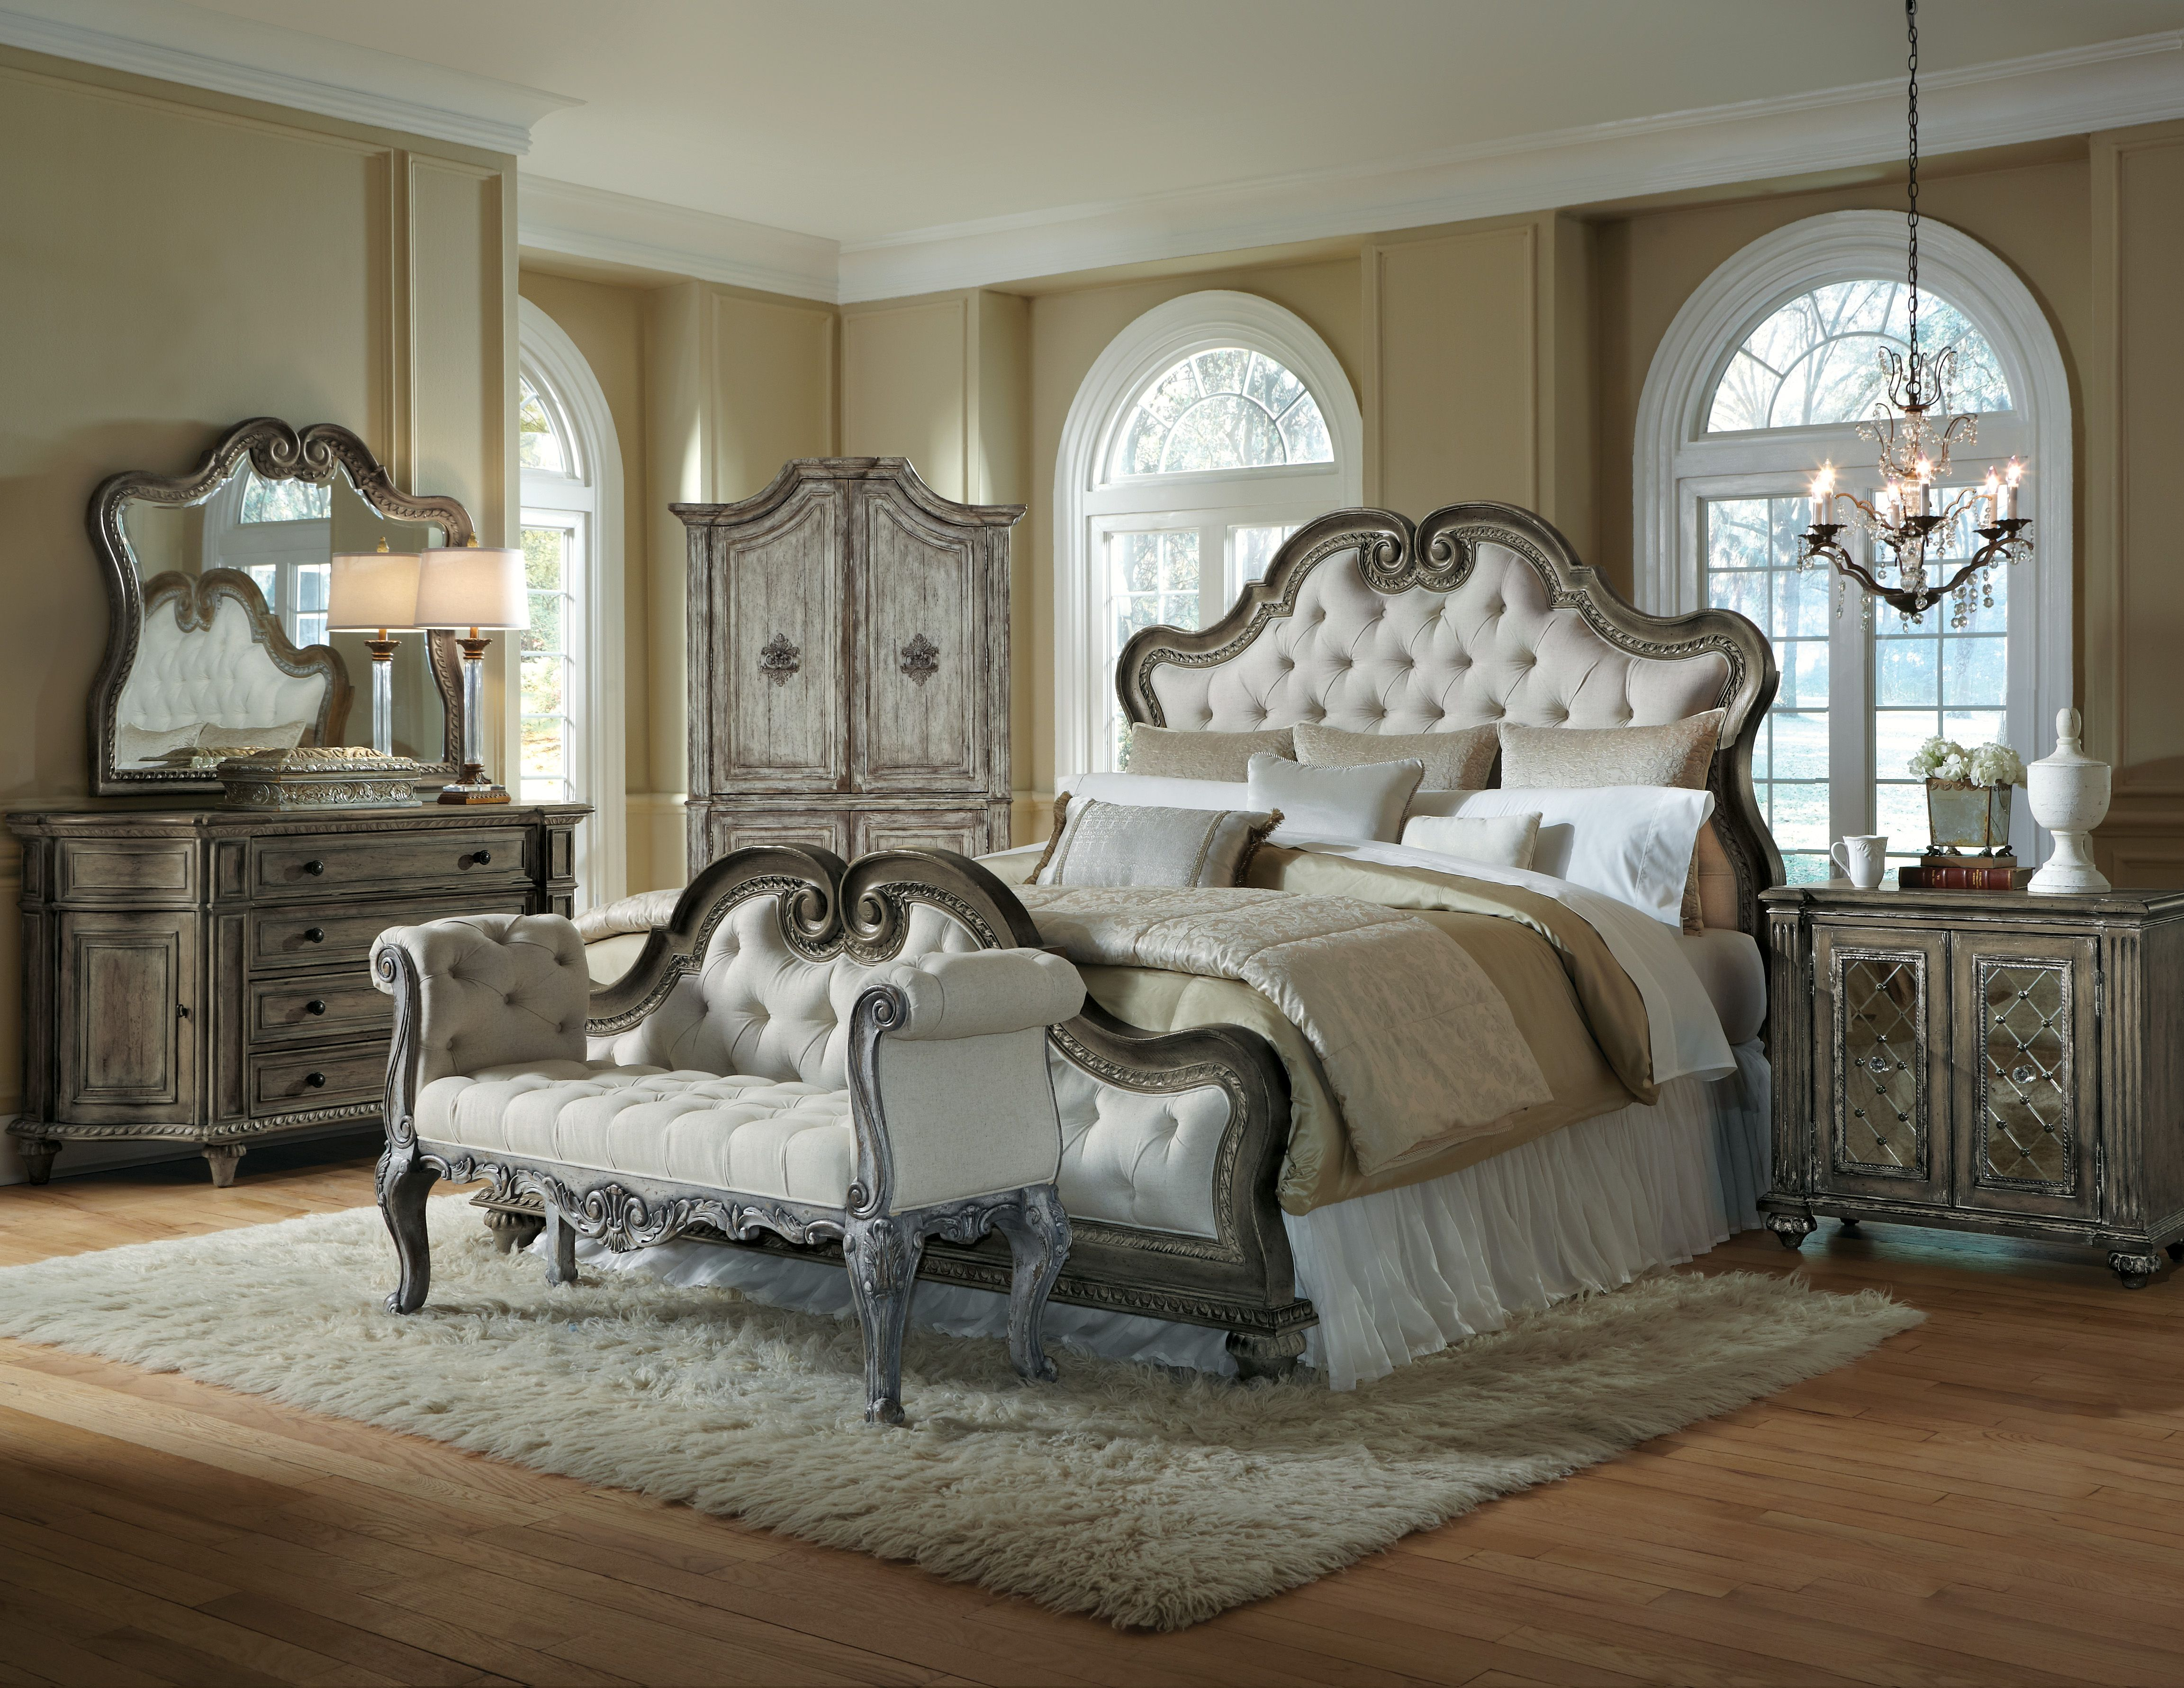 White arabella bedroom set from Accentrics Home by Pulaski ...